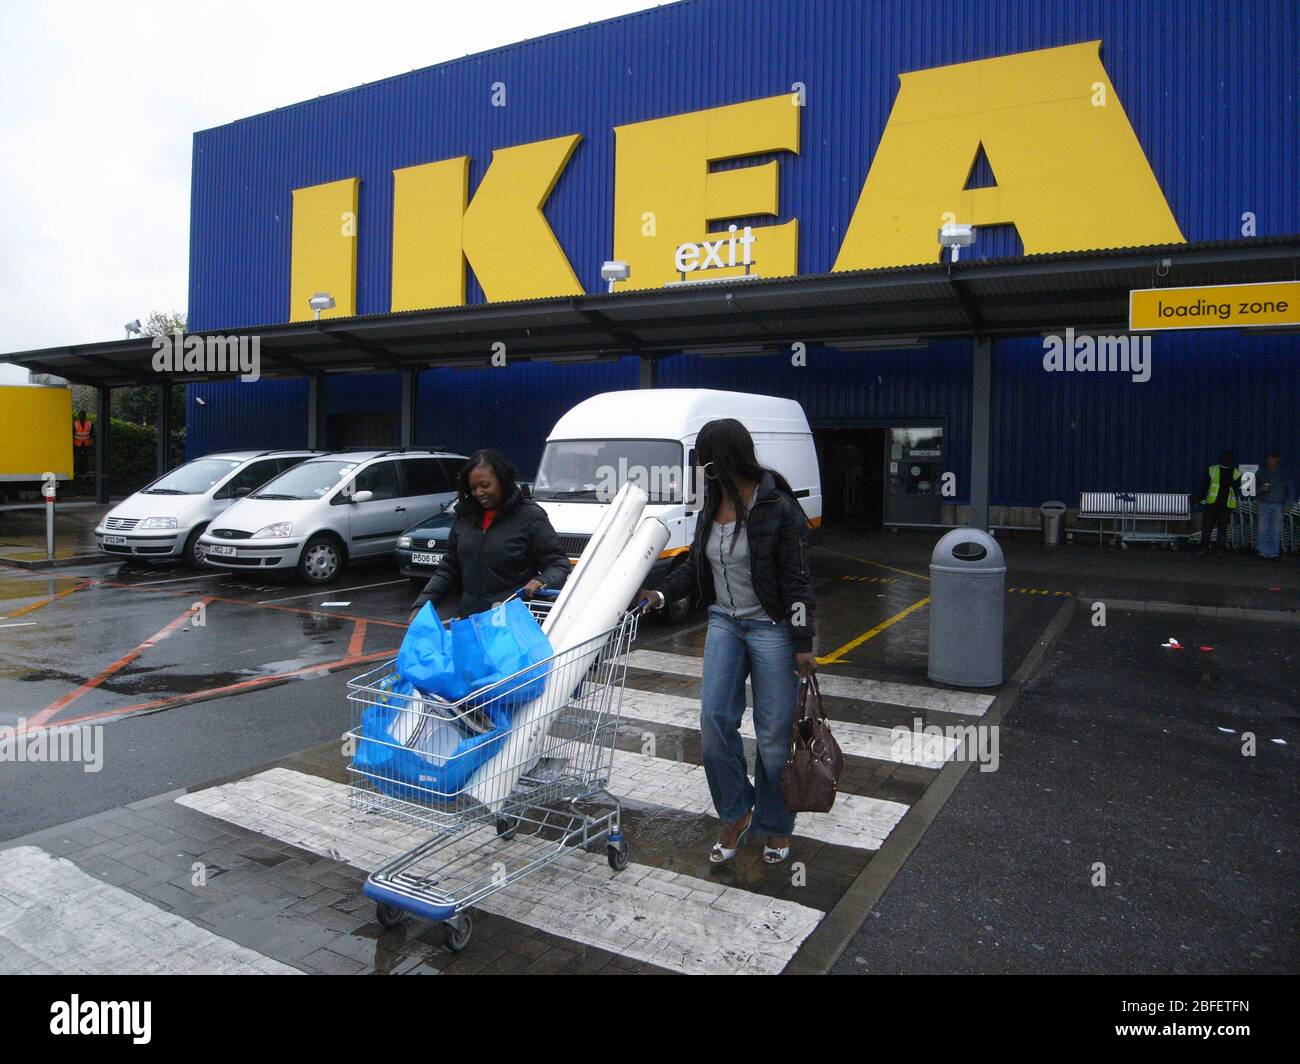 Ikea Customers High Resolution Stock Photography And Images Alamy